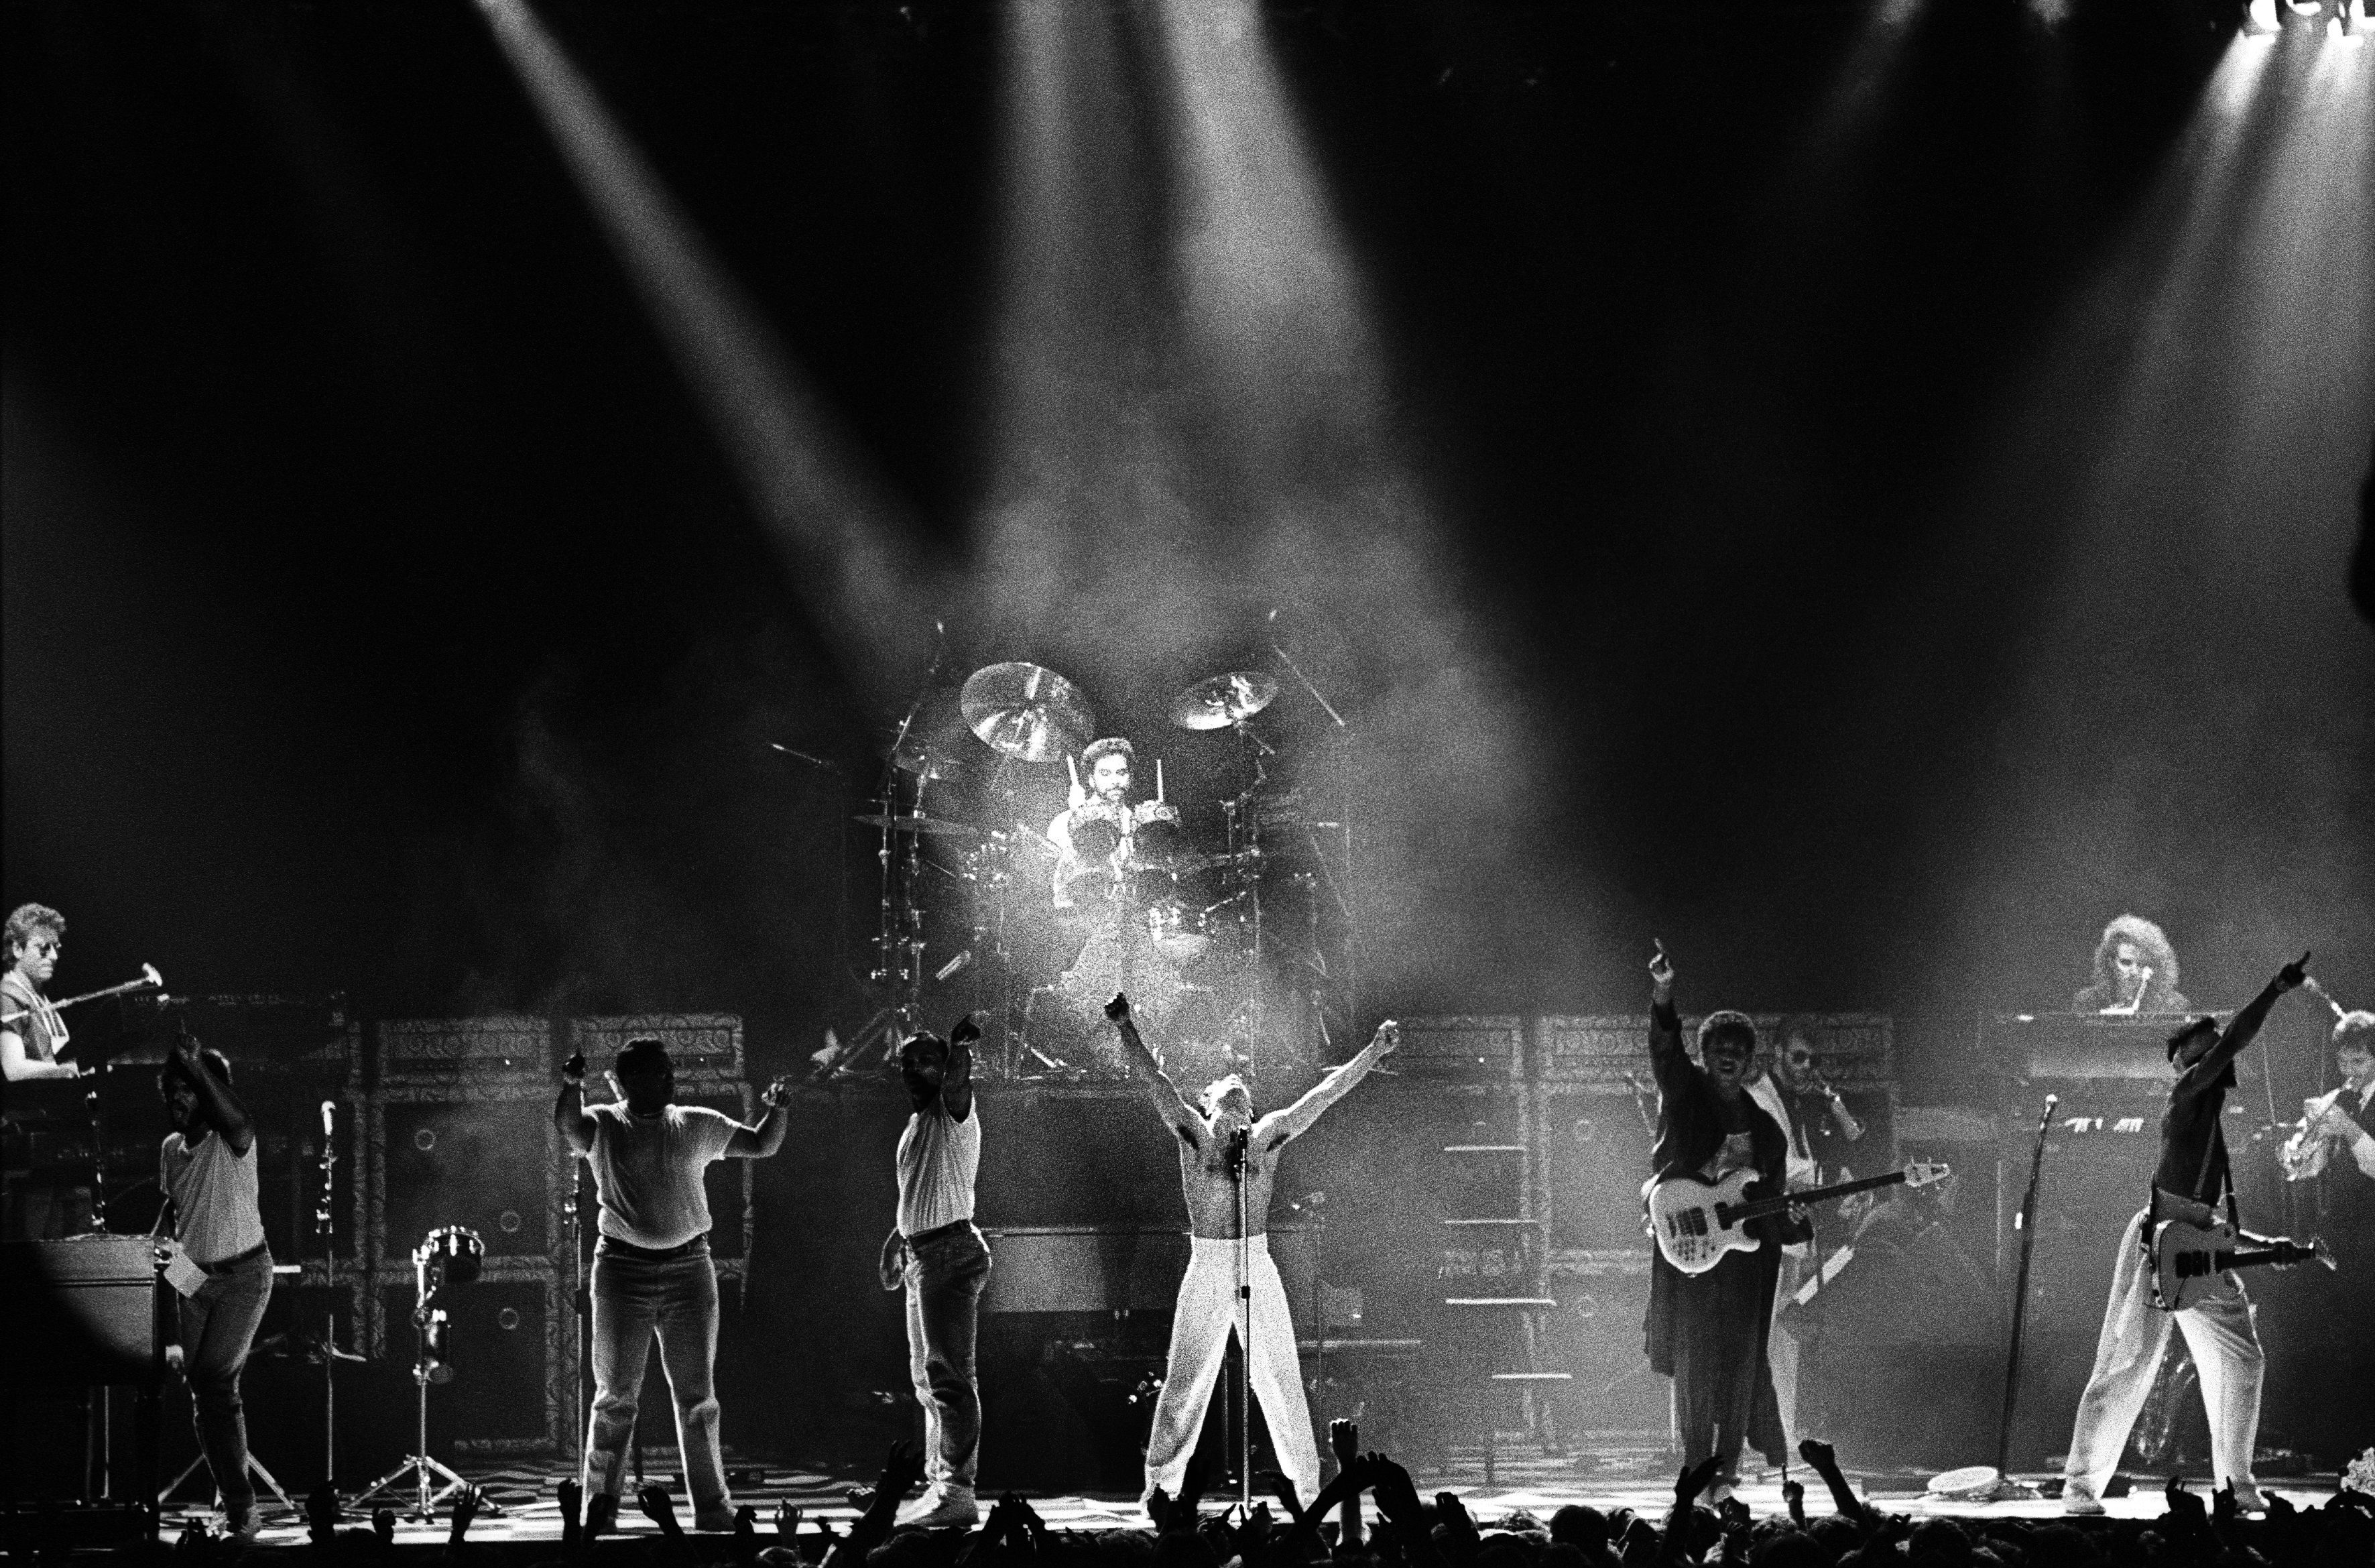 Prince and The Revolution perform on stage at Ahoy, Rotterdam, Netherlands, 17th August 1986.